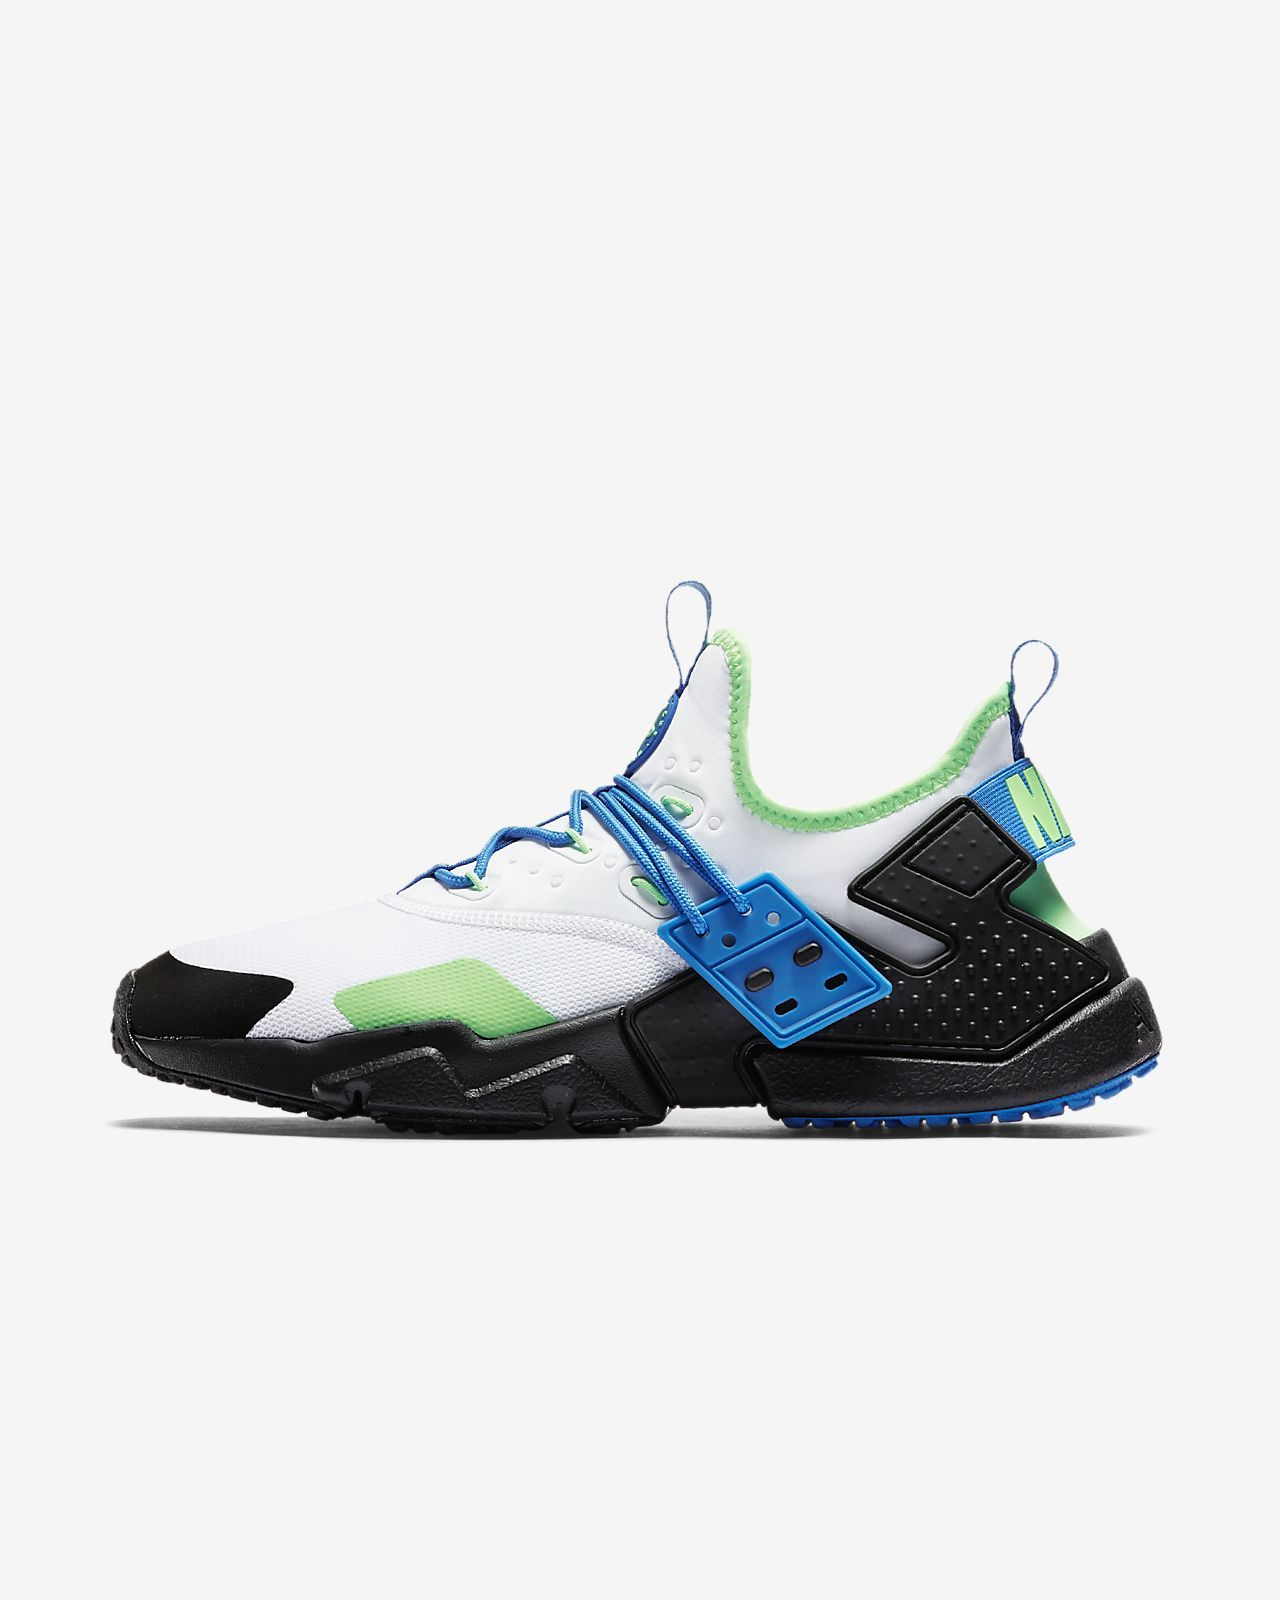 8061d5dee5f8f Nike Air Huarache Drift Men's Shoe unites the best design elements of the  era with a customizable lacing system that lets you wear it in different  way ...